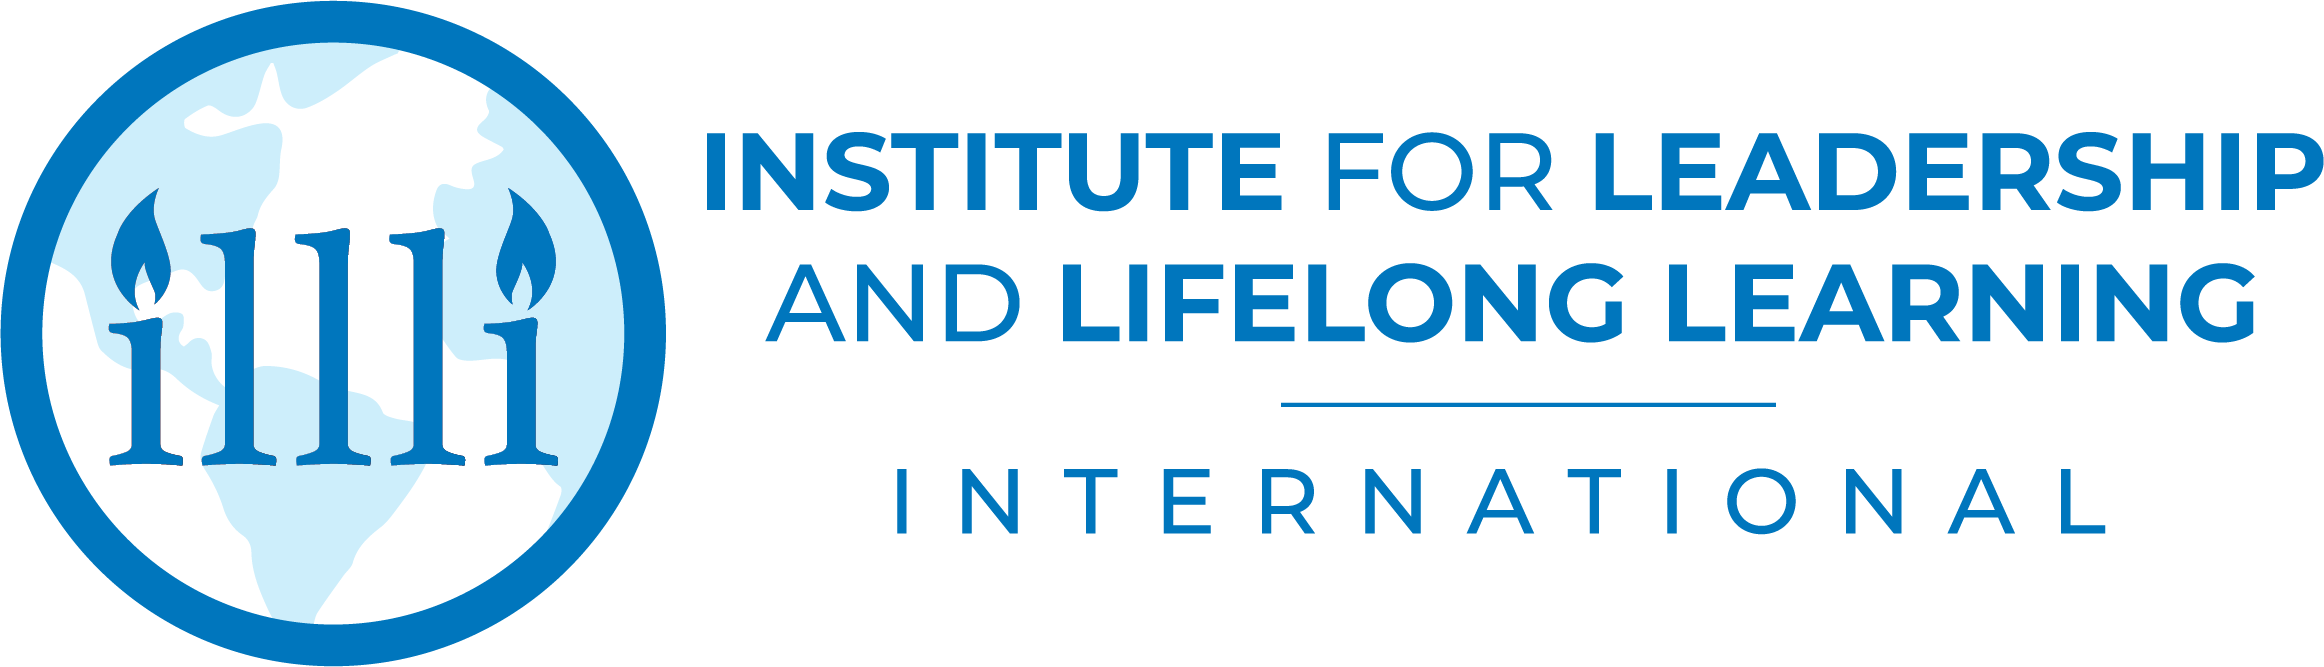 Institute for Leadership and Lifelong Learning International